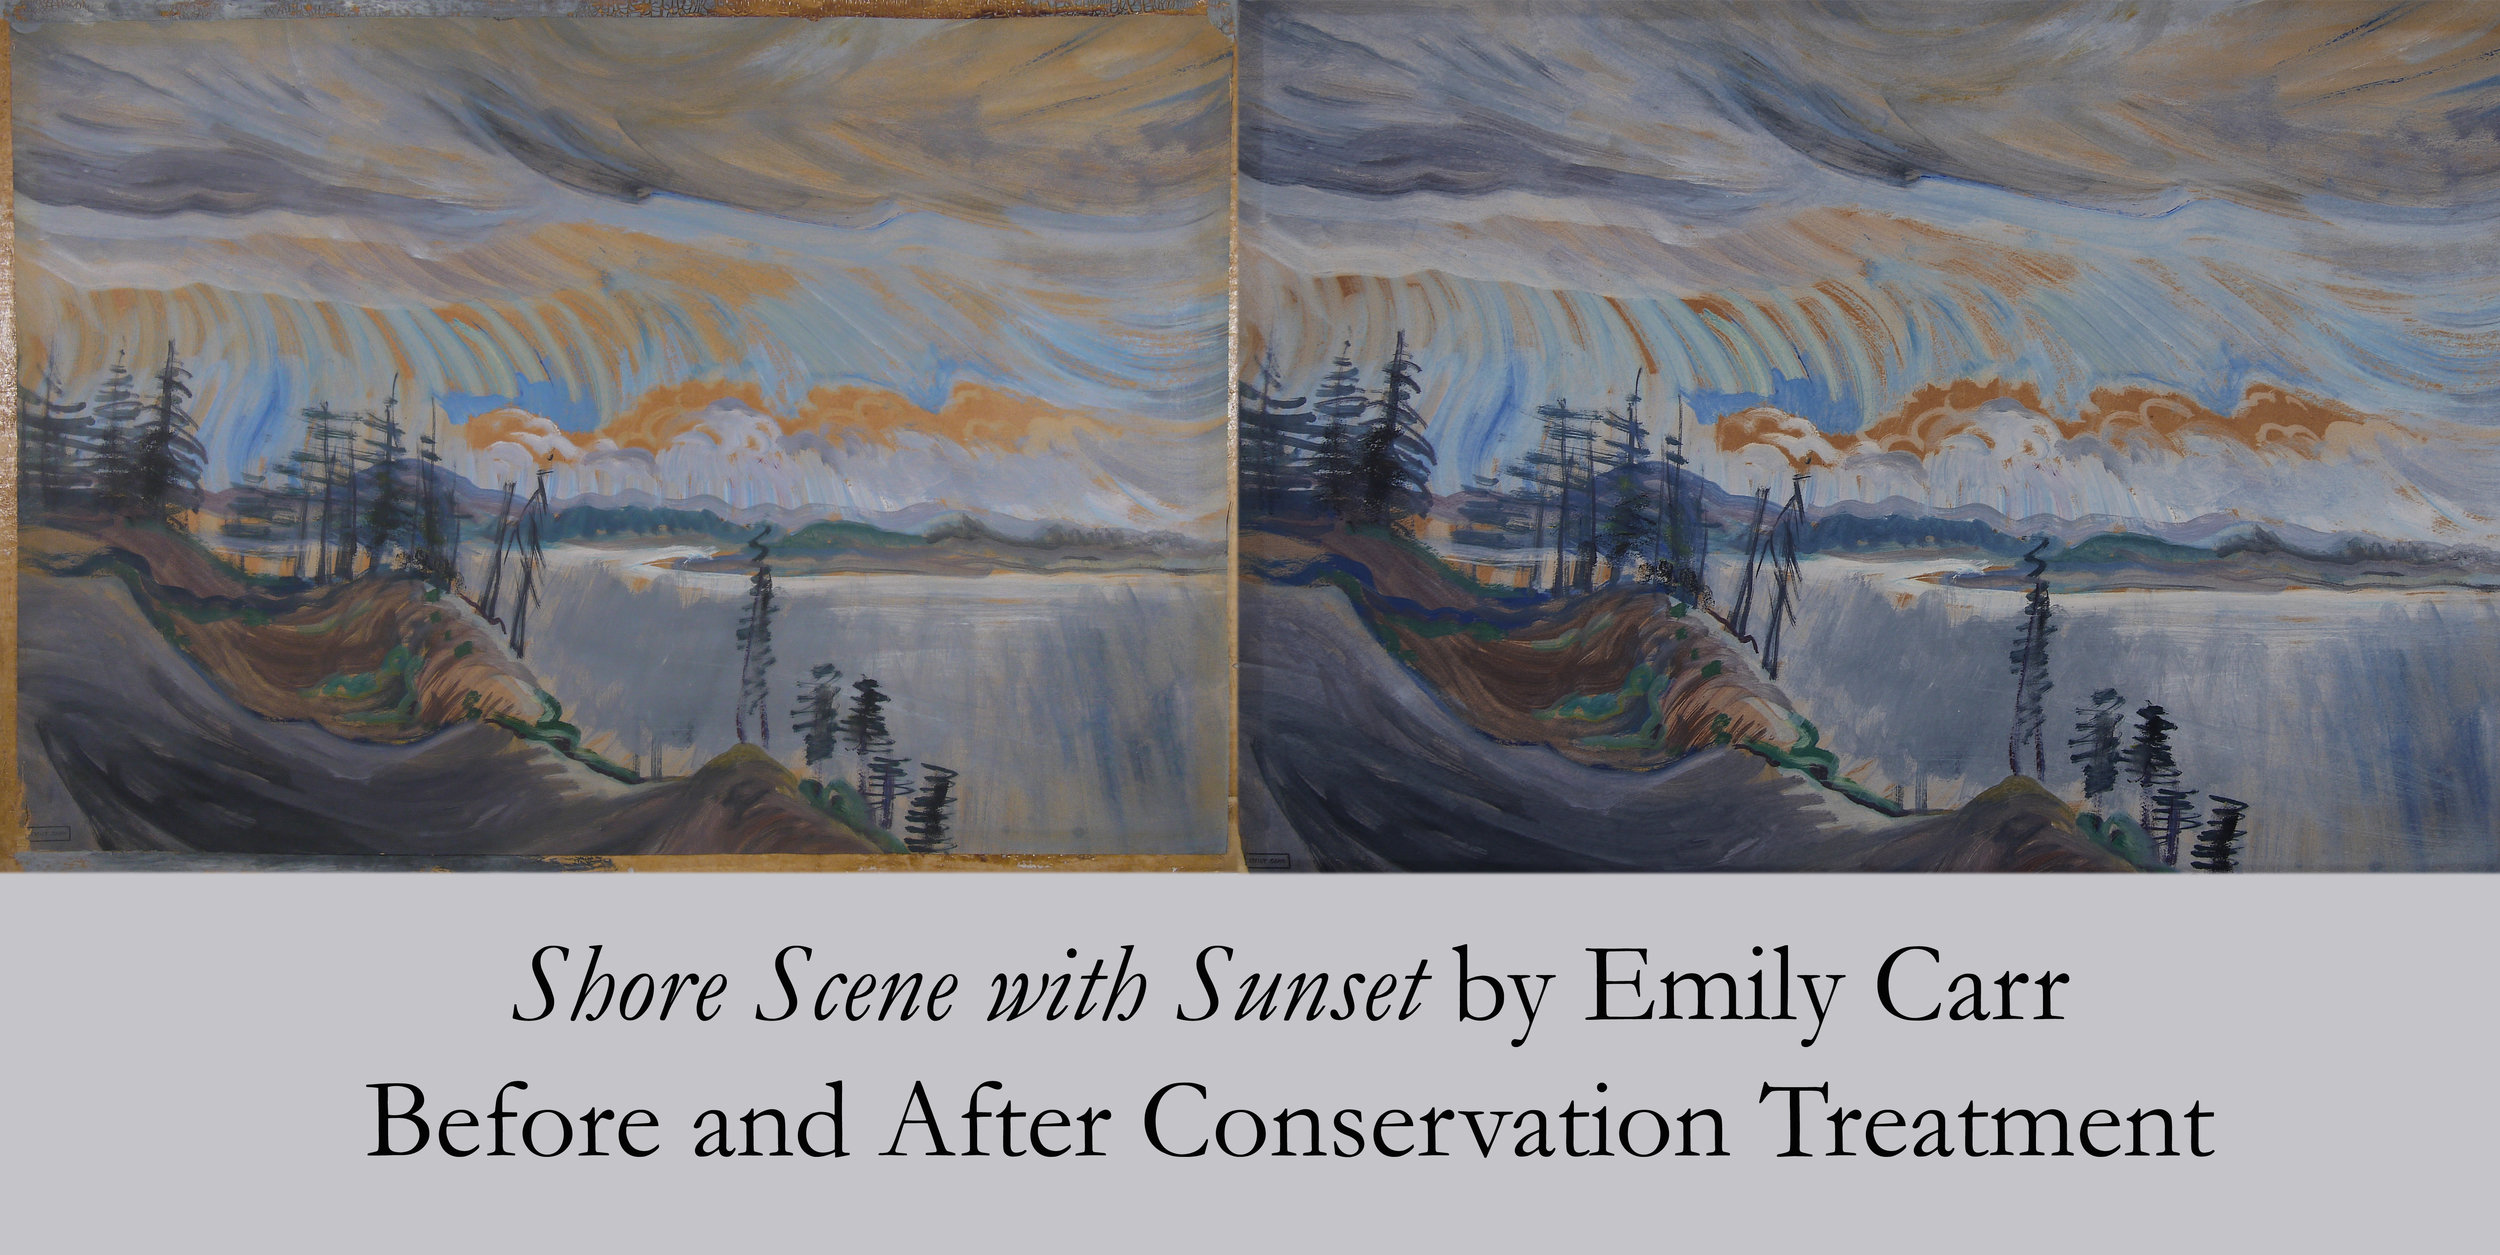 Shore Scene with Sunset by Emily Carr - Before and After Conservation Treatment